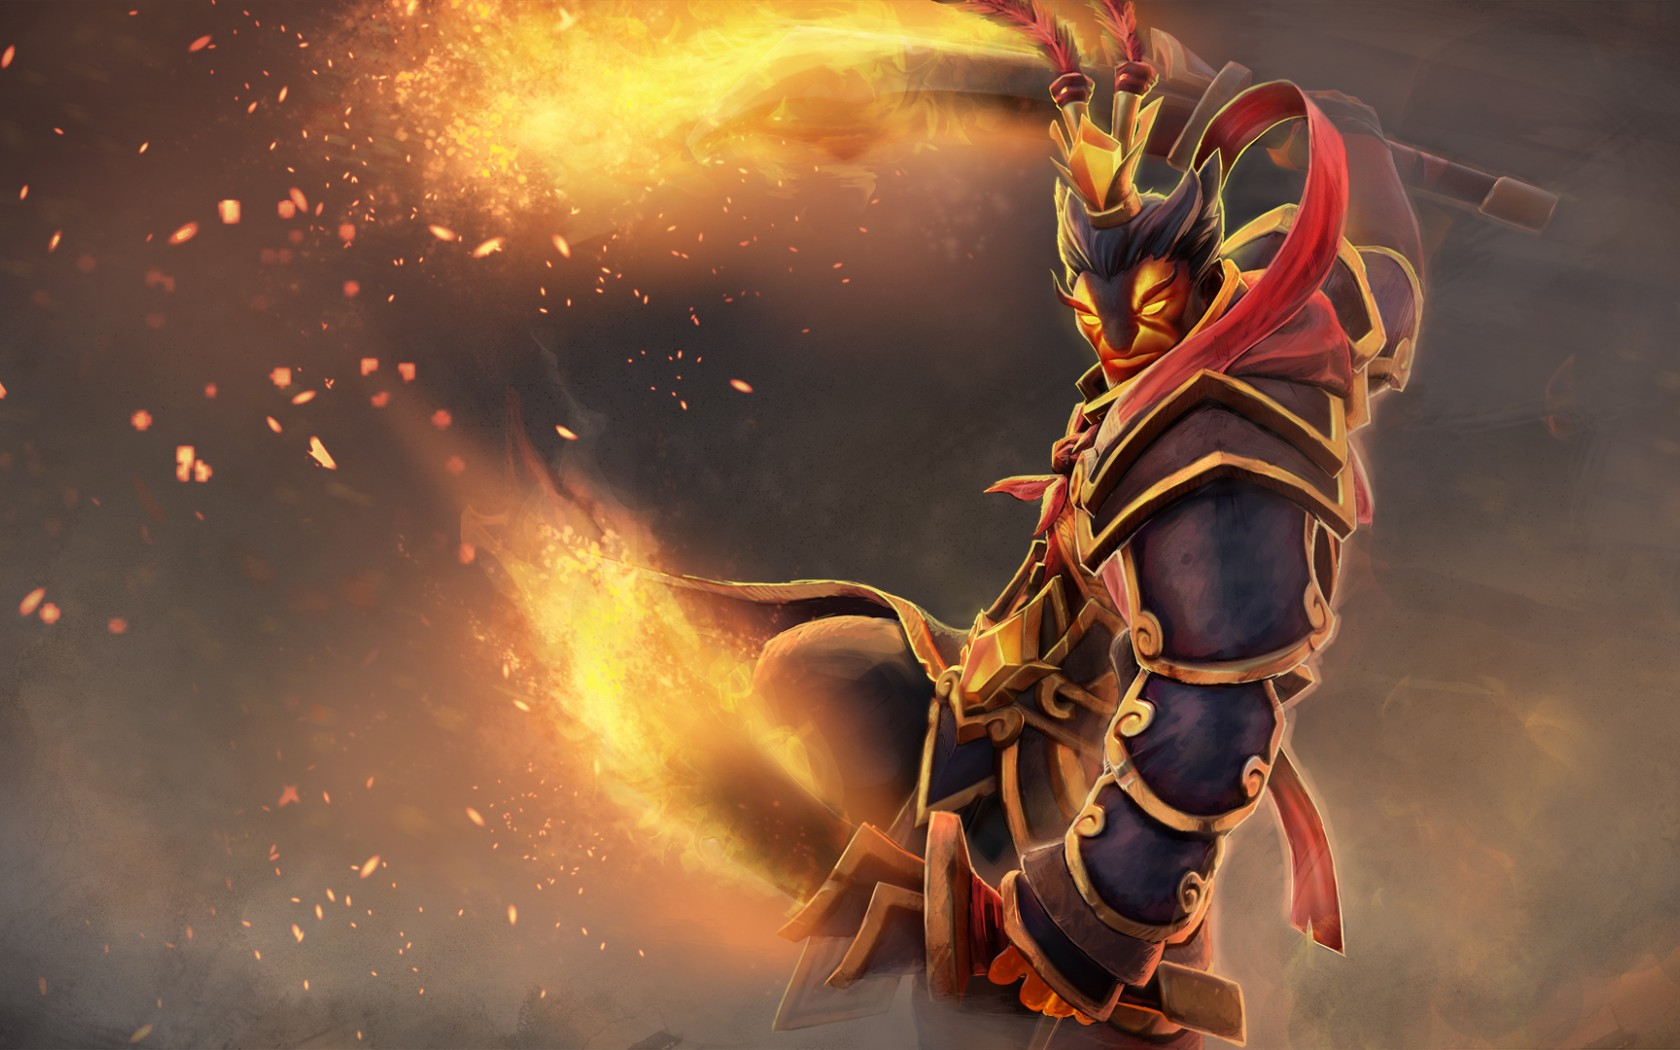 Ember Spirit Wallpaper In Desktop Wallpapers Dota 2 Private Collection Background Image